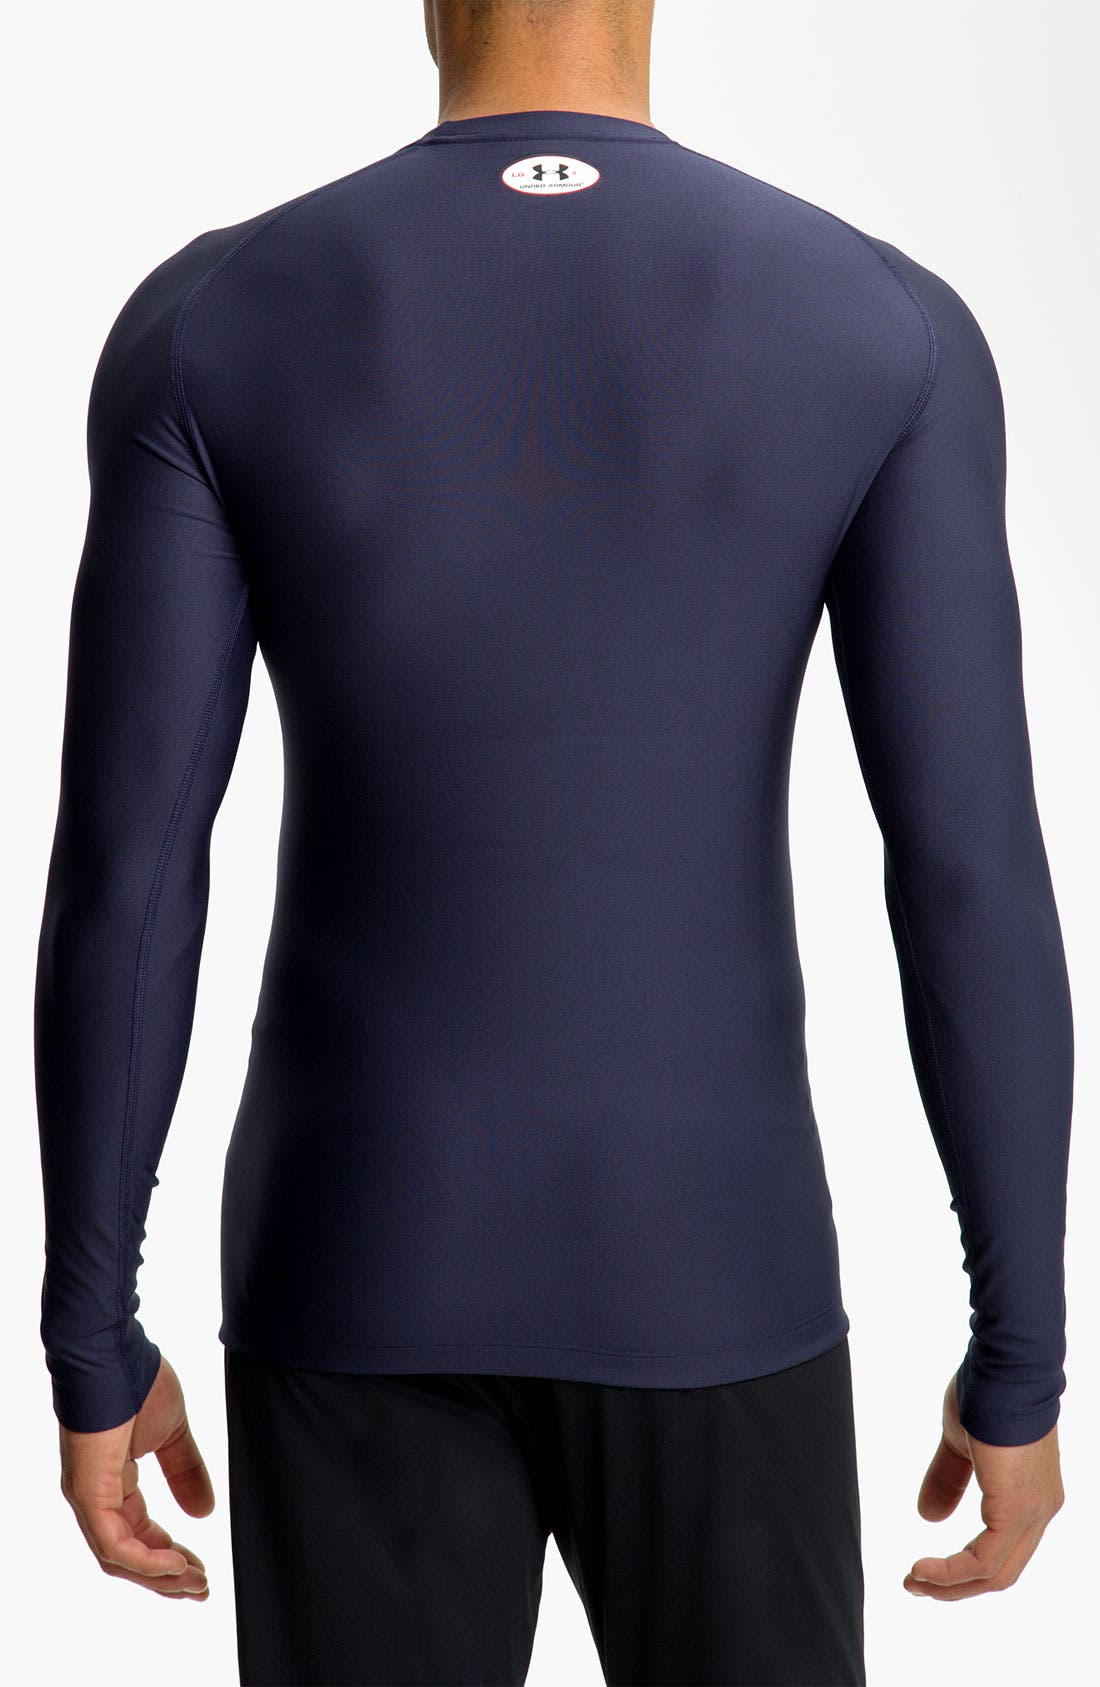 Alternate Image 2  - Under Armour 'Evo - Game Day' ColdGear® Compression T-Shirt (Online Only)